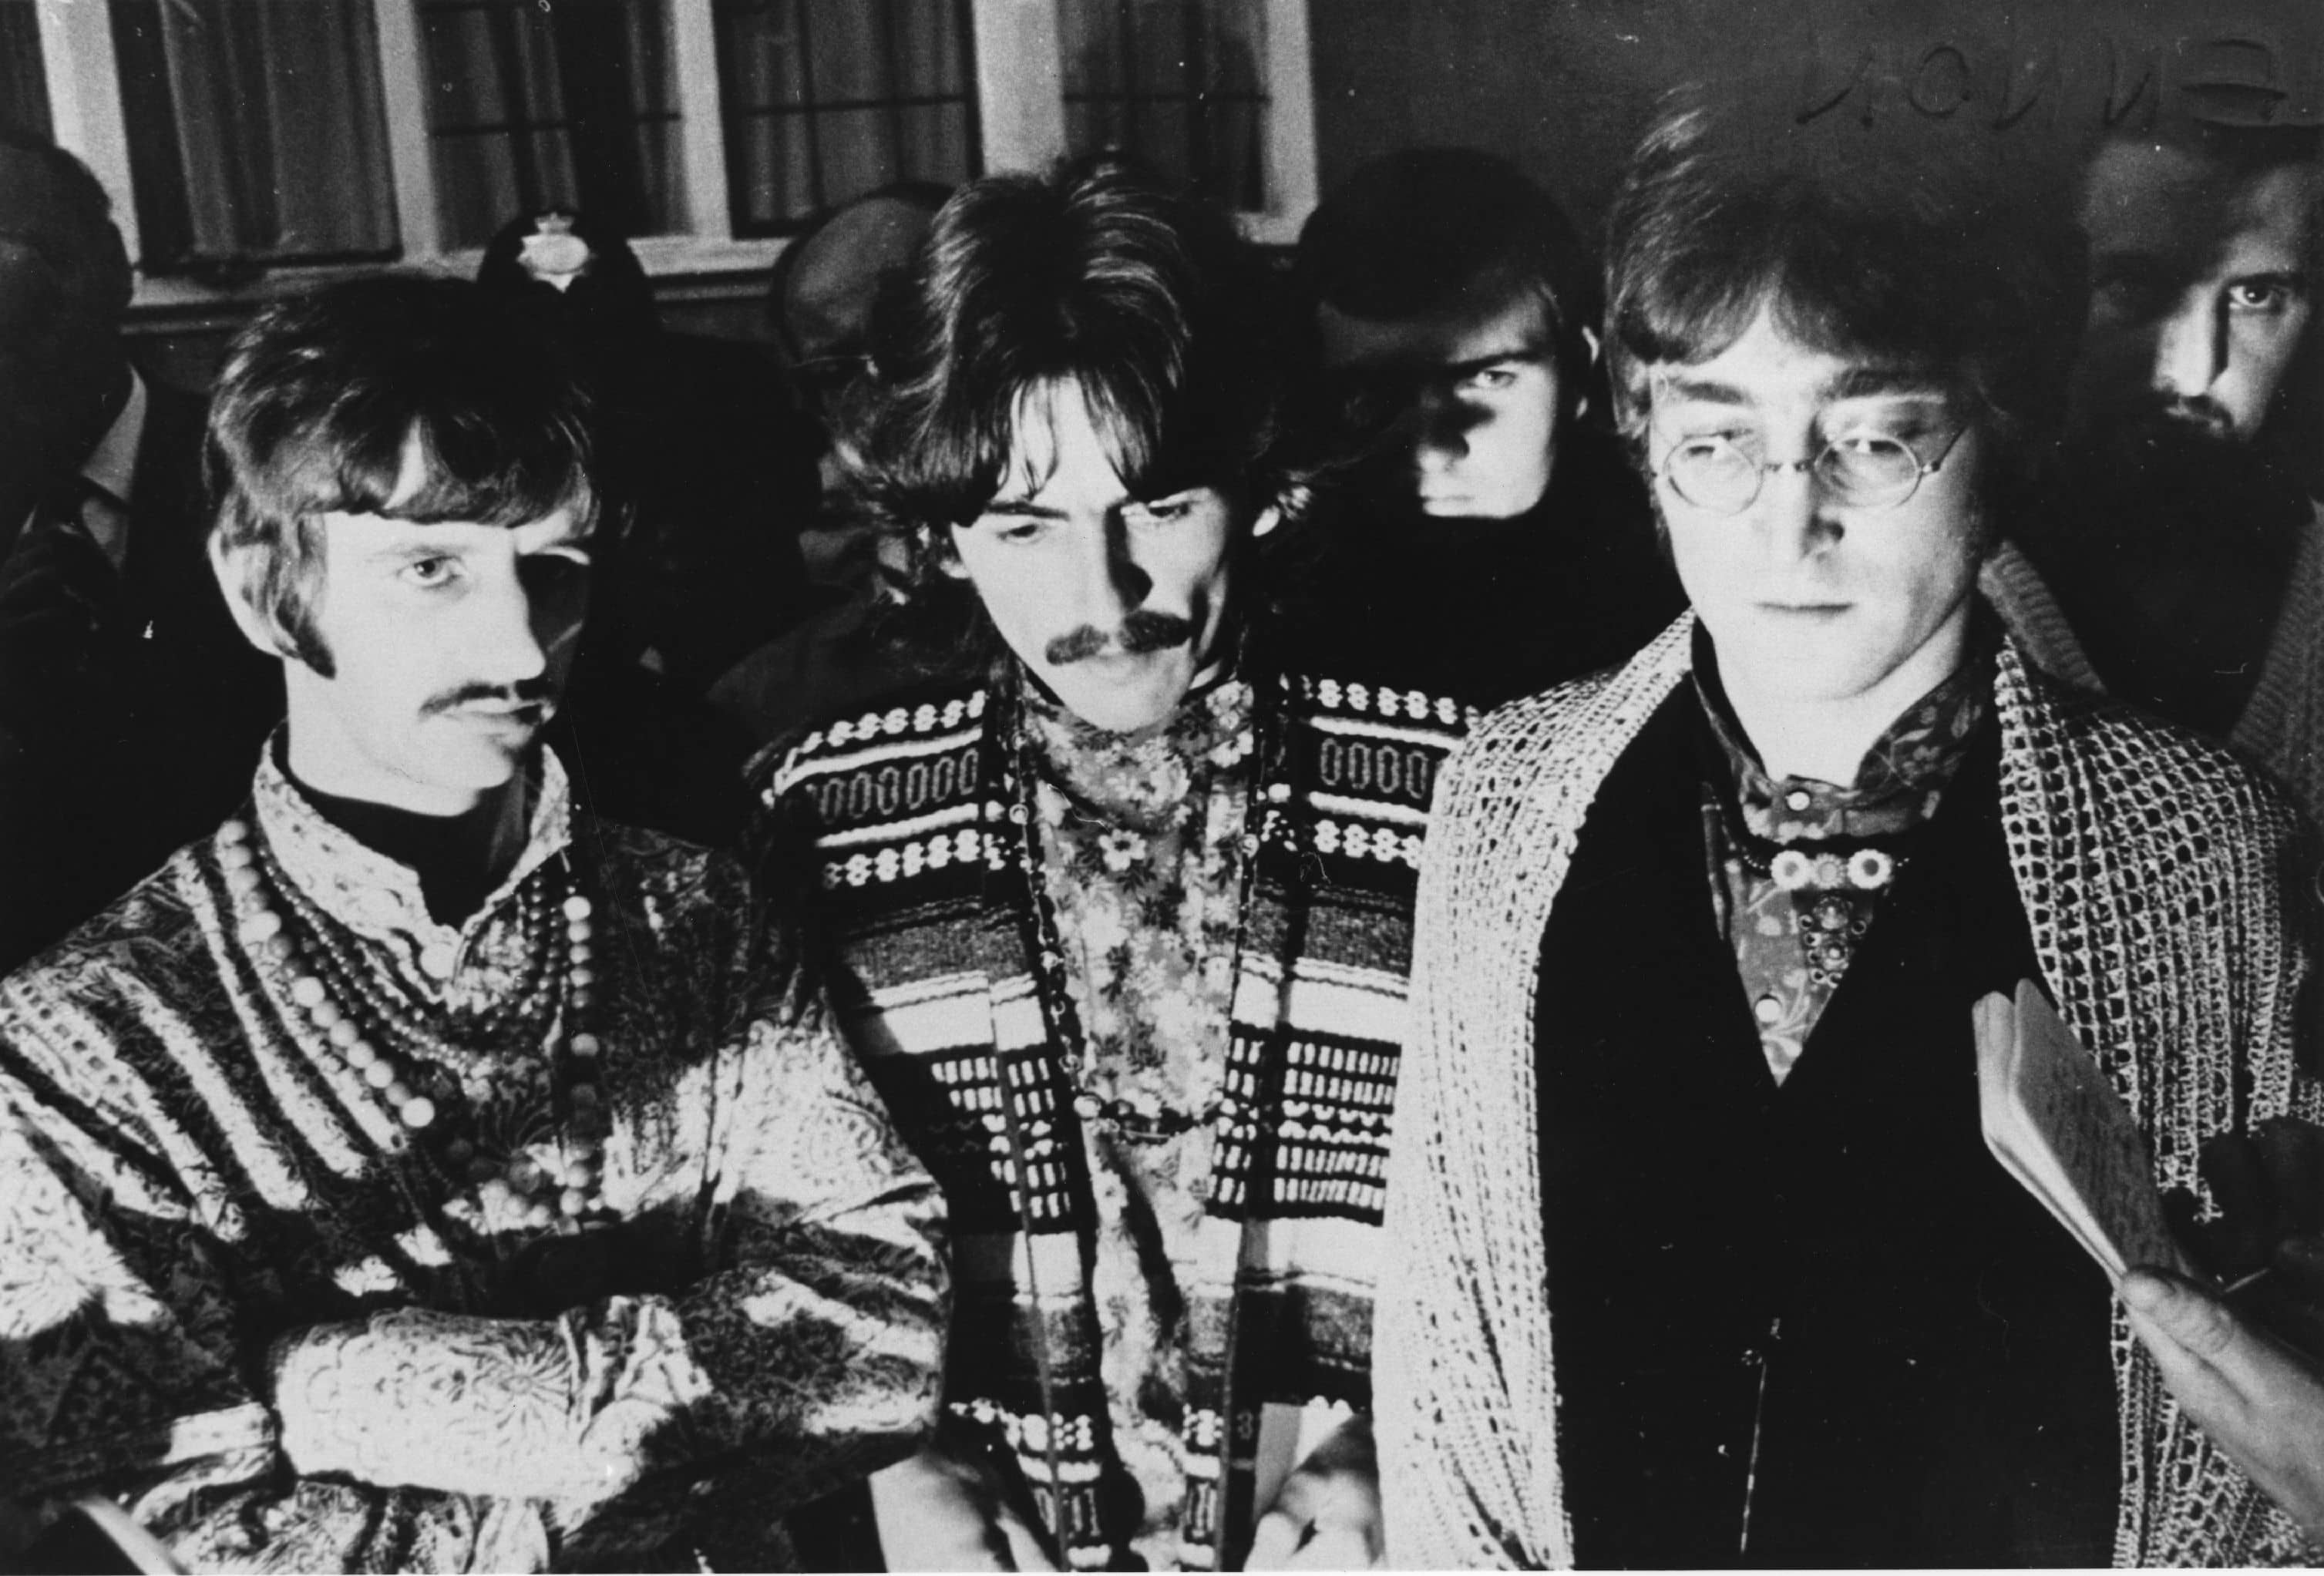 Ringo Starr, George Harrison and John Lennon in Bangor, north Wales, August 1967